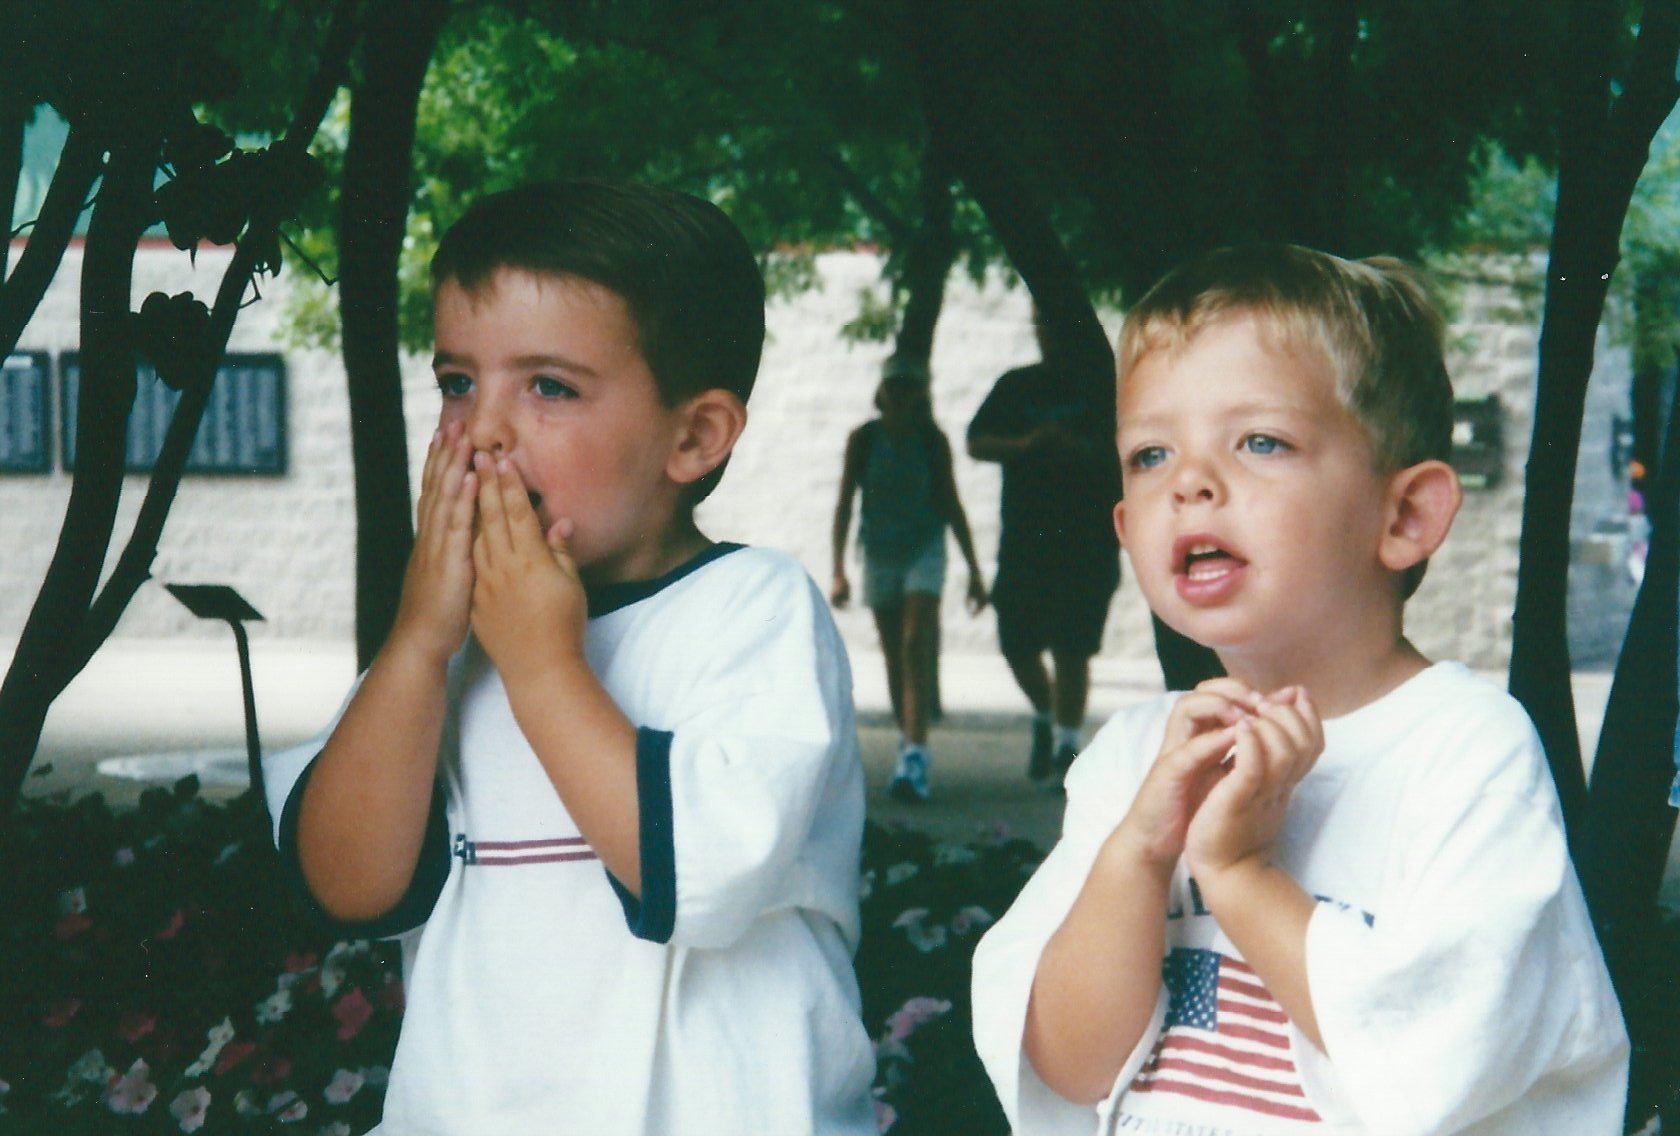 Watching a Parade, age 4ish, photo by tdp